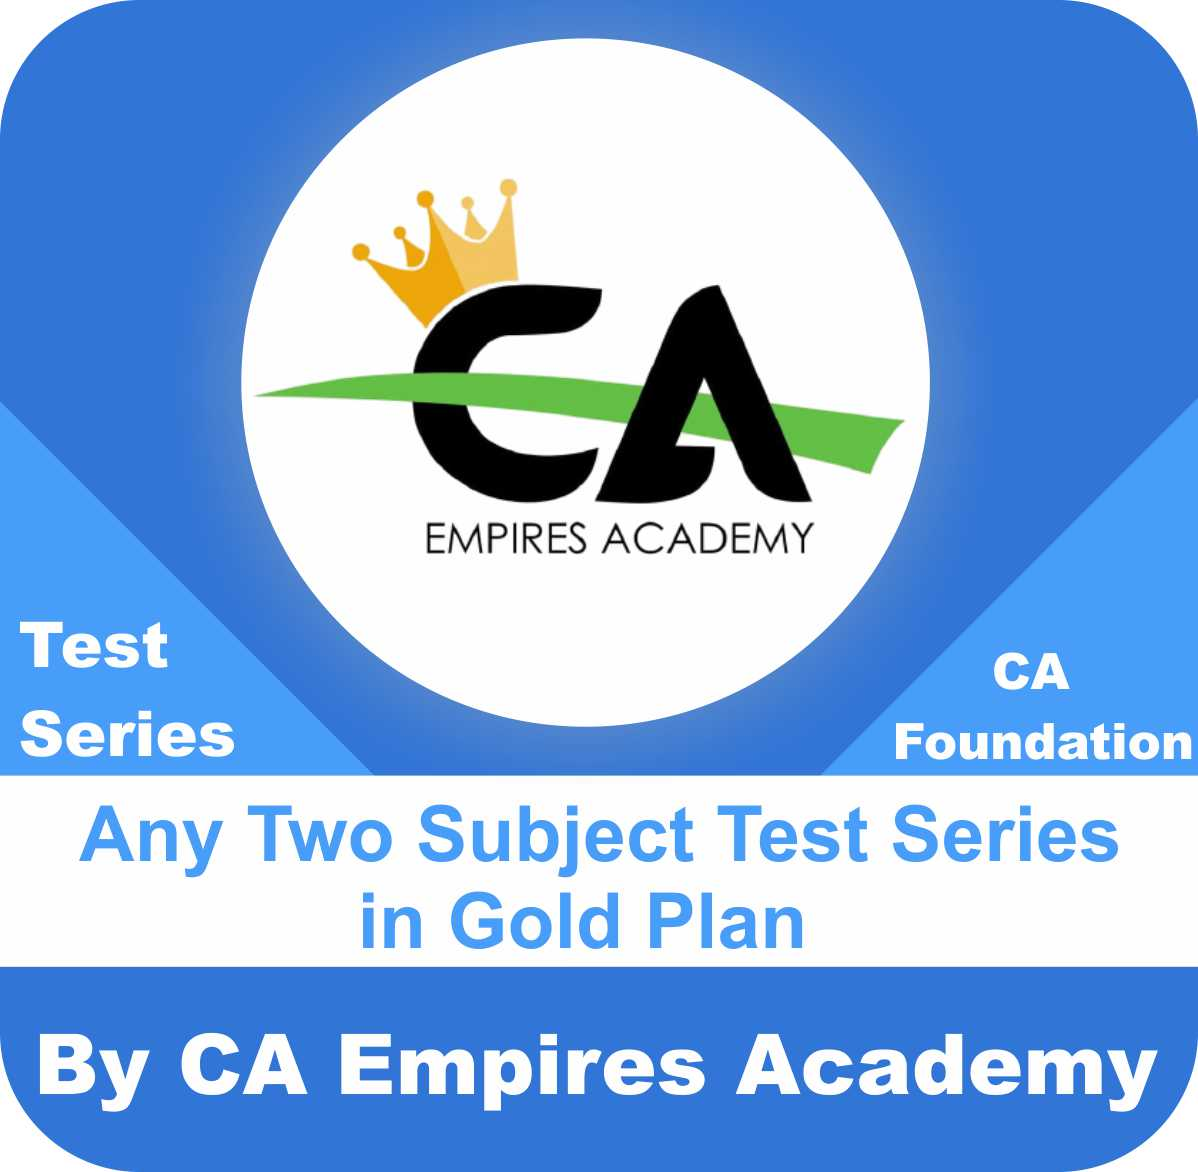 Any Two Subject Test Series in Gold Plan